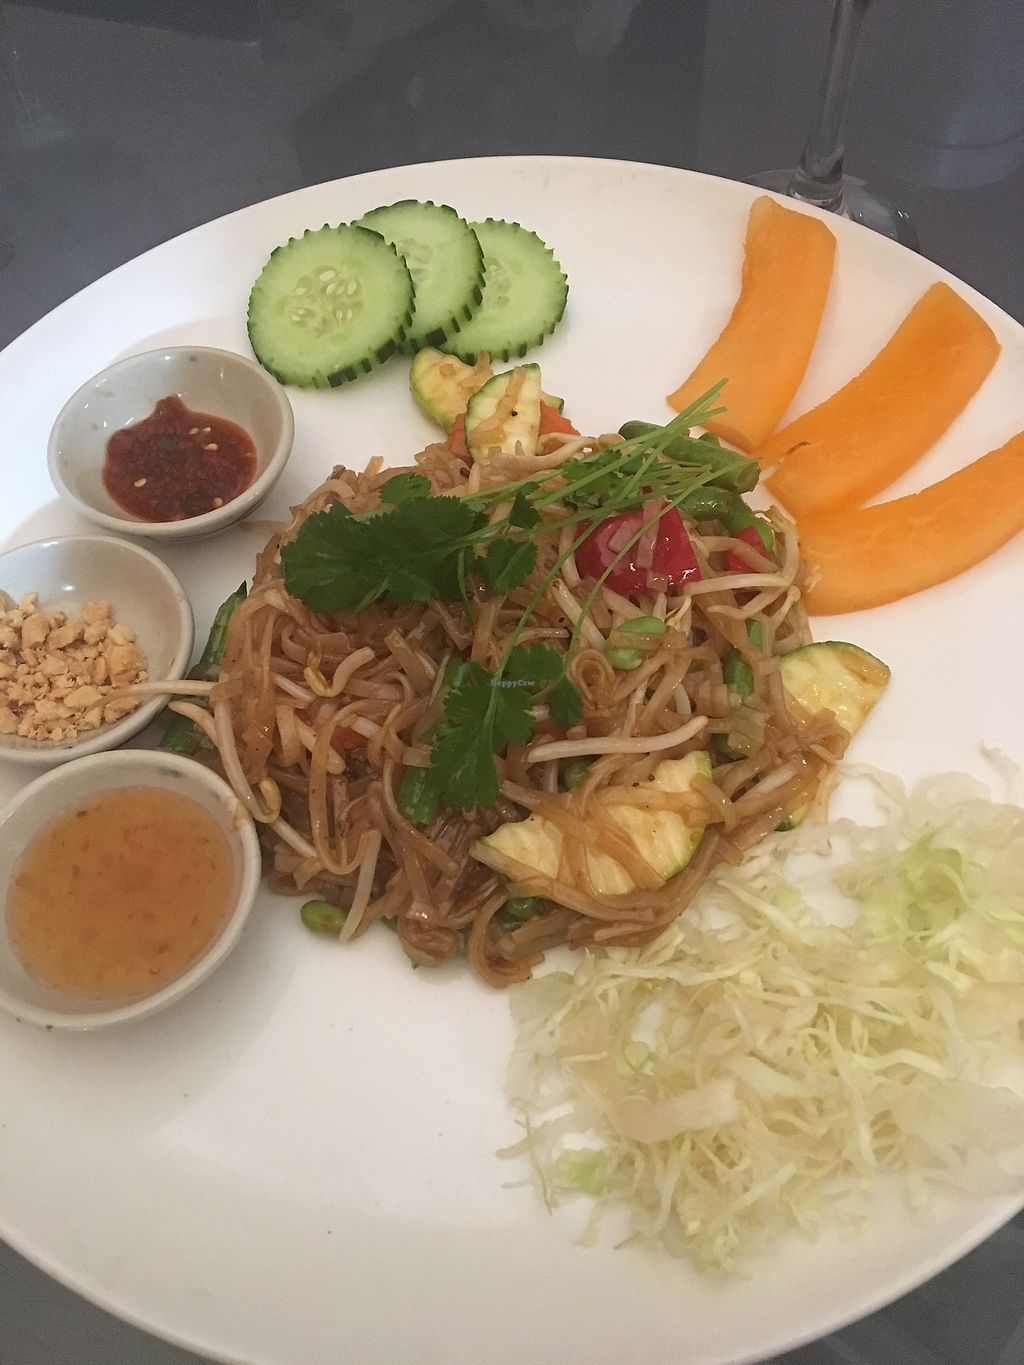 "Photo of Thai Spice  by <a href=""/members/profile/KWalach"">KWalach</a> <br/>Pad Thai (Vegan) - Amazing flavor! <br/> October 22, 2017  - <a href='/contact/abuse/image/38940/317451'>Report</a>"